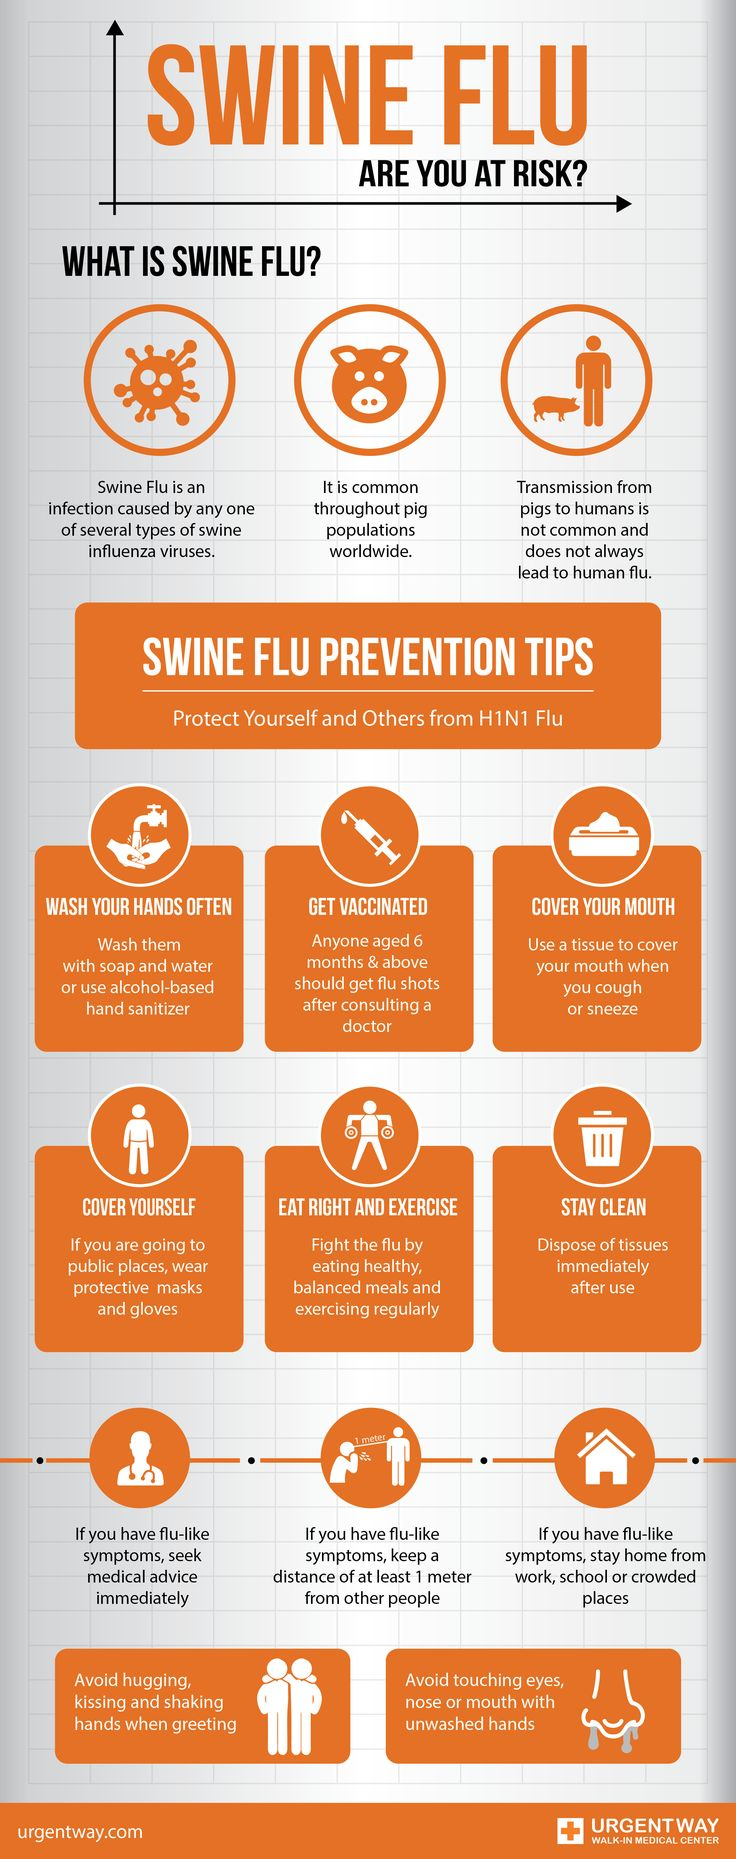 The Health Ministry of Mexico shared that the country had seen a recent spike in the H1N1 virus, commonly known as Swine flu, during the recent flu season.  Our team developed the below infographic to help you prevent the disease and keep your self and your loved ones safe.